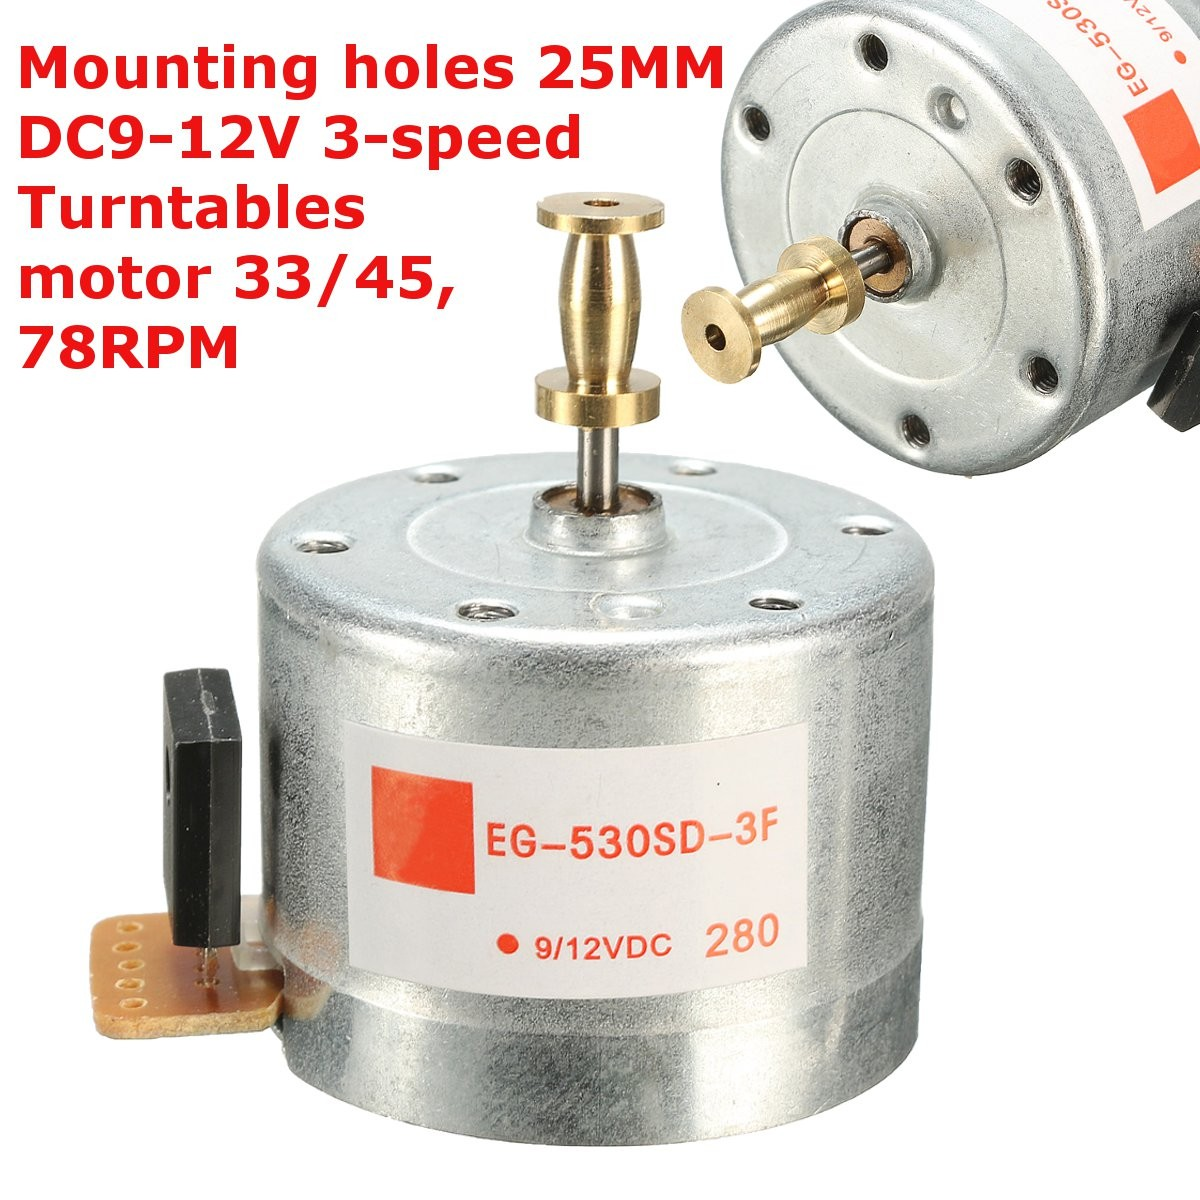 New DC9-12V 3-speed Turntables Motor 25MM Mounting Holes 33/45,78RPM For 3-speed TurntableNew DC9-12V 3-speed Turntables Motor 25MM Mounting Holes 33/45,78RPM For 3-speed Turntable